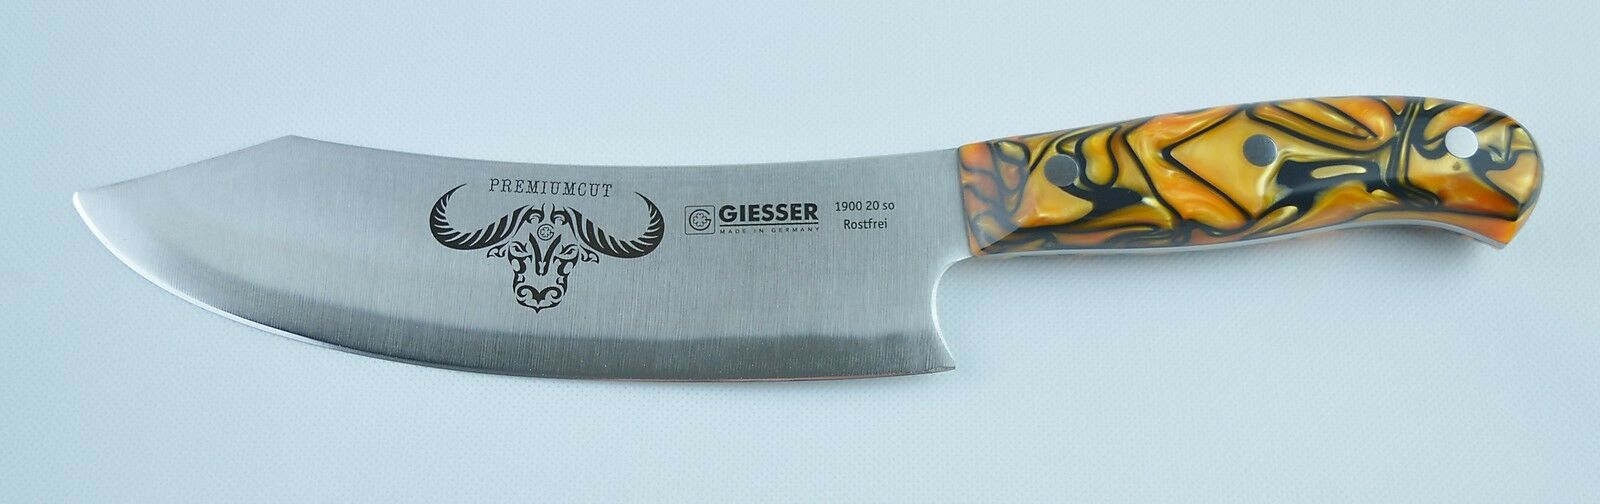 Giesser Messer PremiumCut Chefs No. 1 SPICY Orange 20 cm BBQ